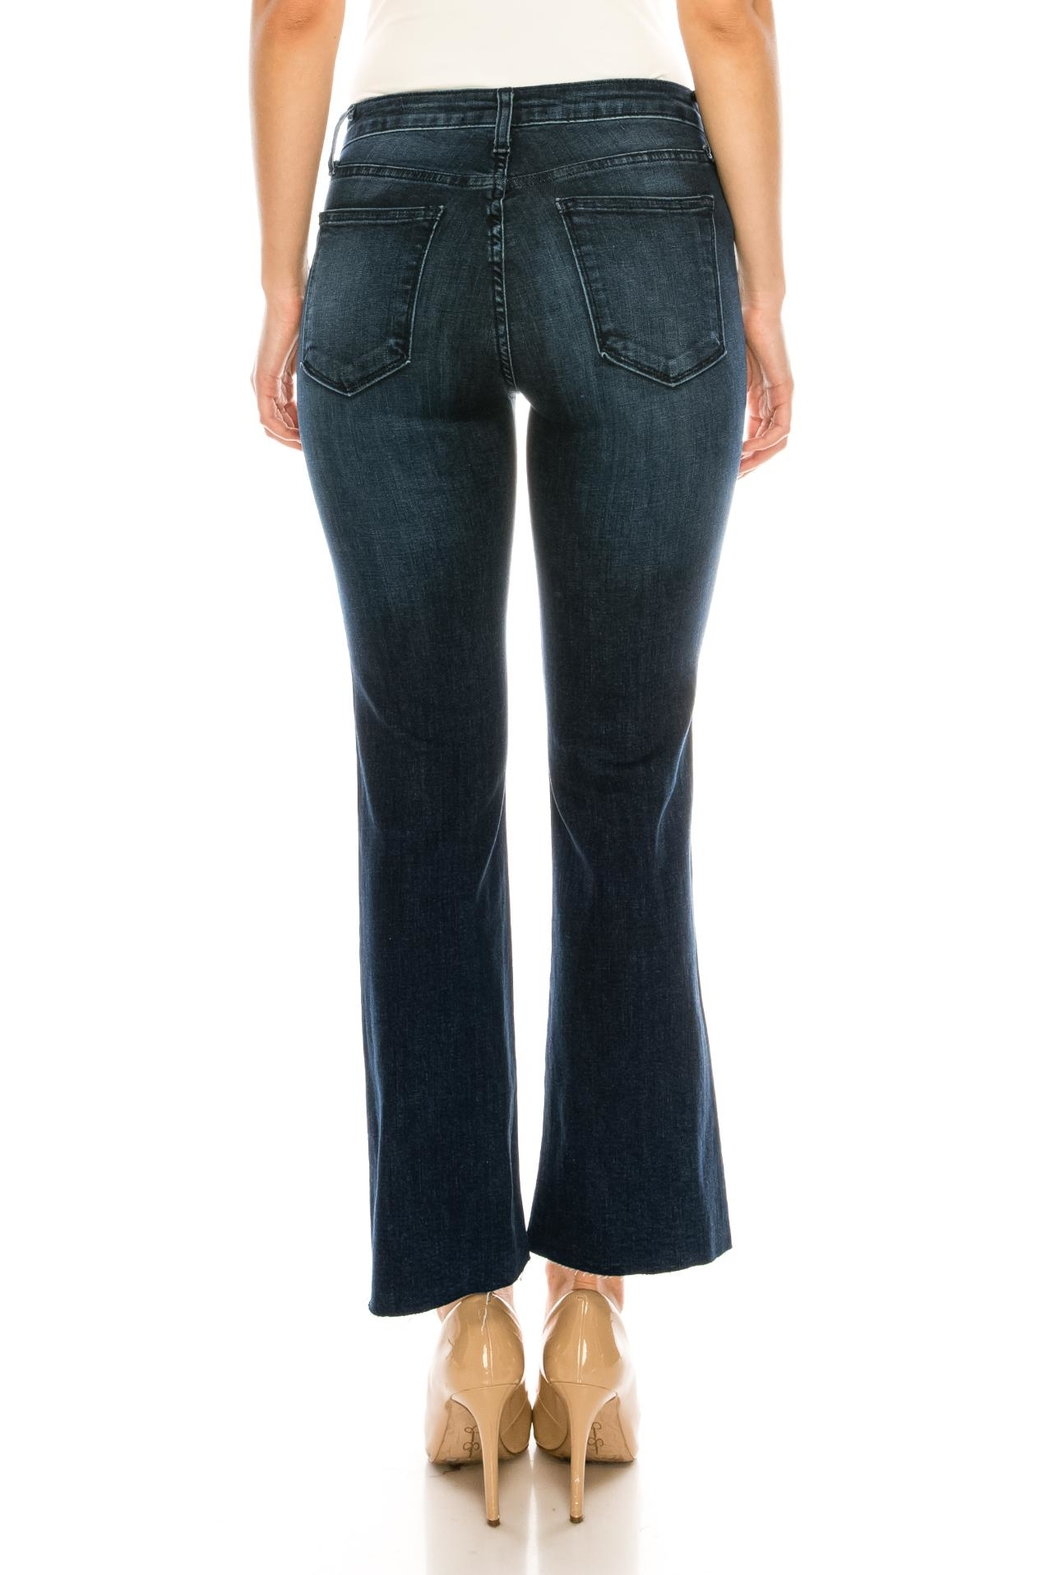 just black Bootcut Cropped Jeans - Back Cropped Image